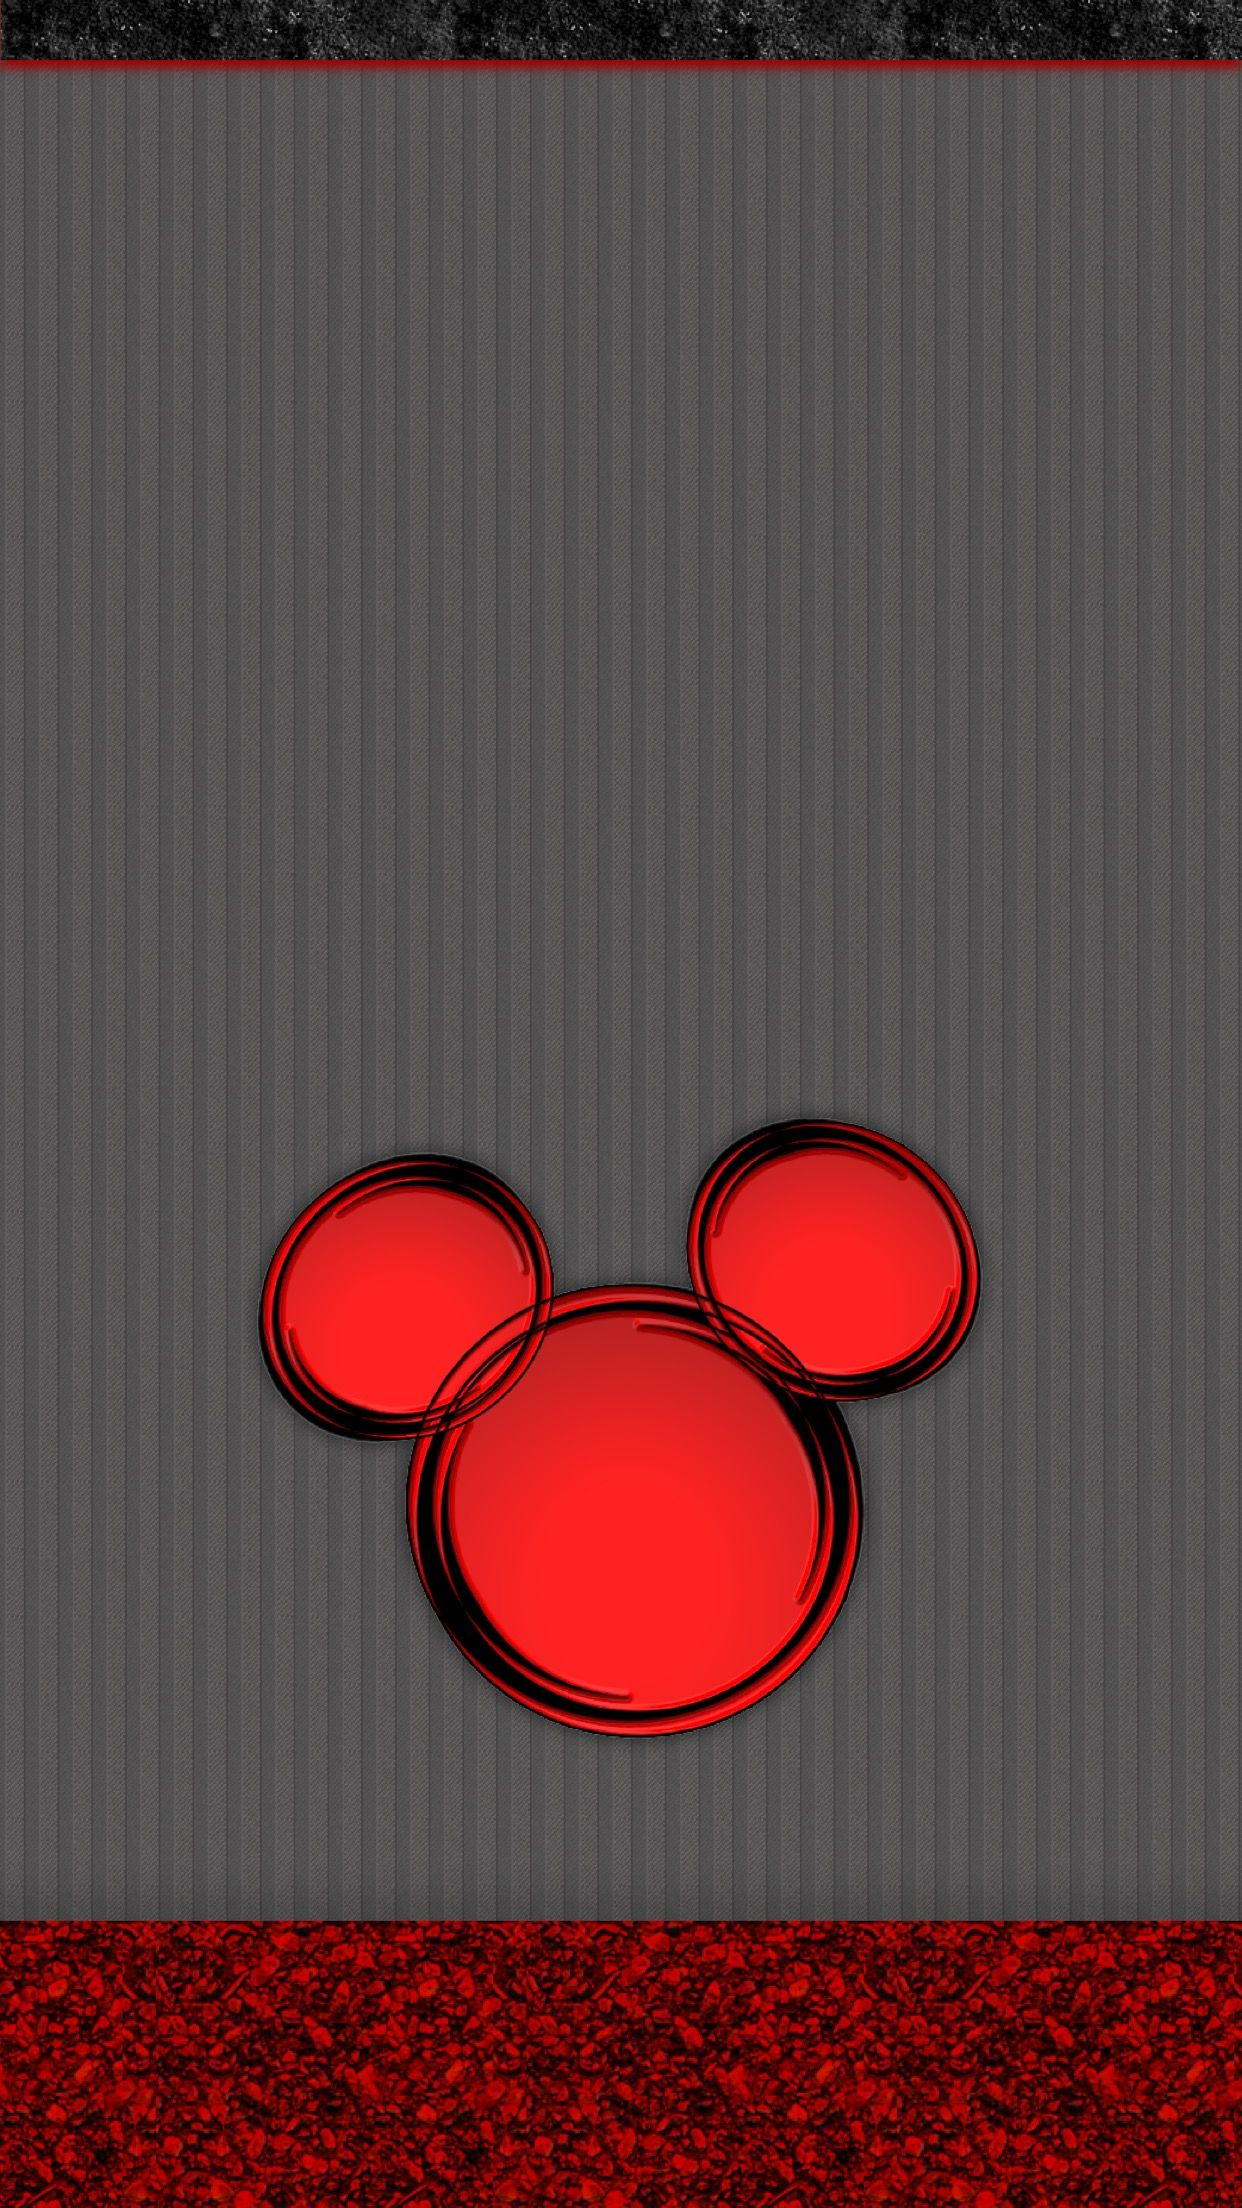 Cool Wallpaper Home Screen Mickey Mouse - bddd8bfd20f7ecea9a3ee6e02dd3904b  Pic_119198.jpg